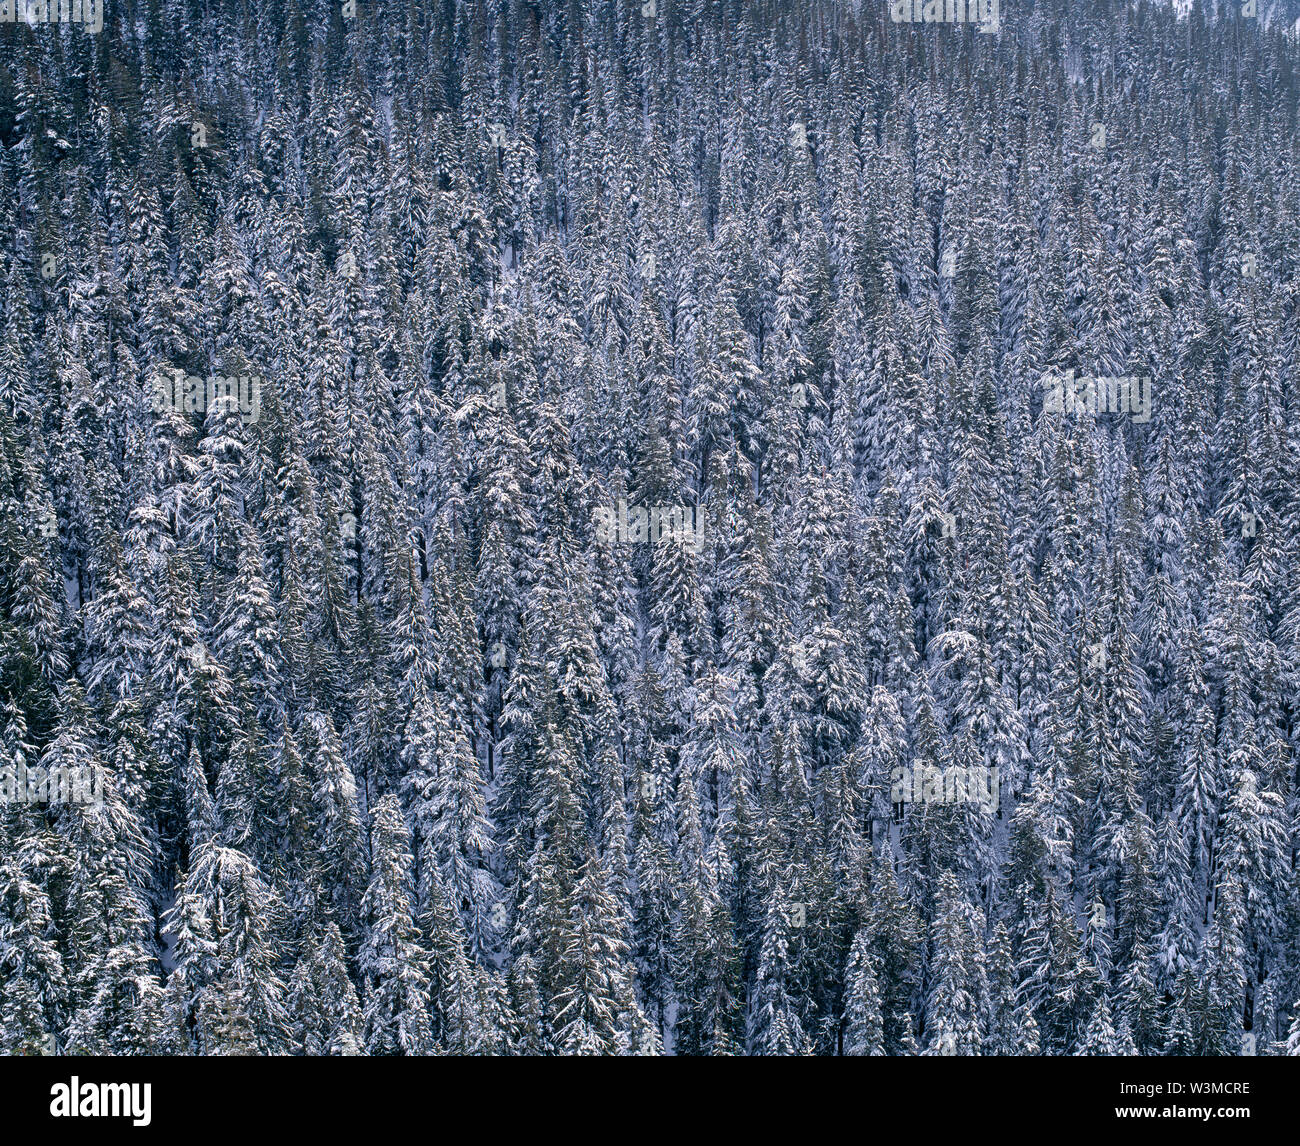 USA, Washington, Mt. Rainier National Park, Winter snow clings to conifer forest above Paradise River. Stock Photo